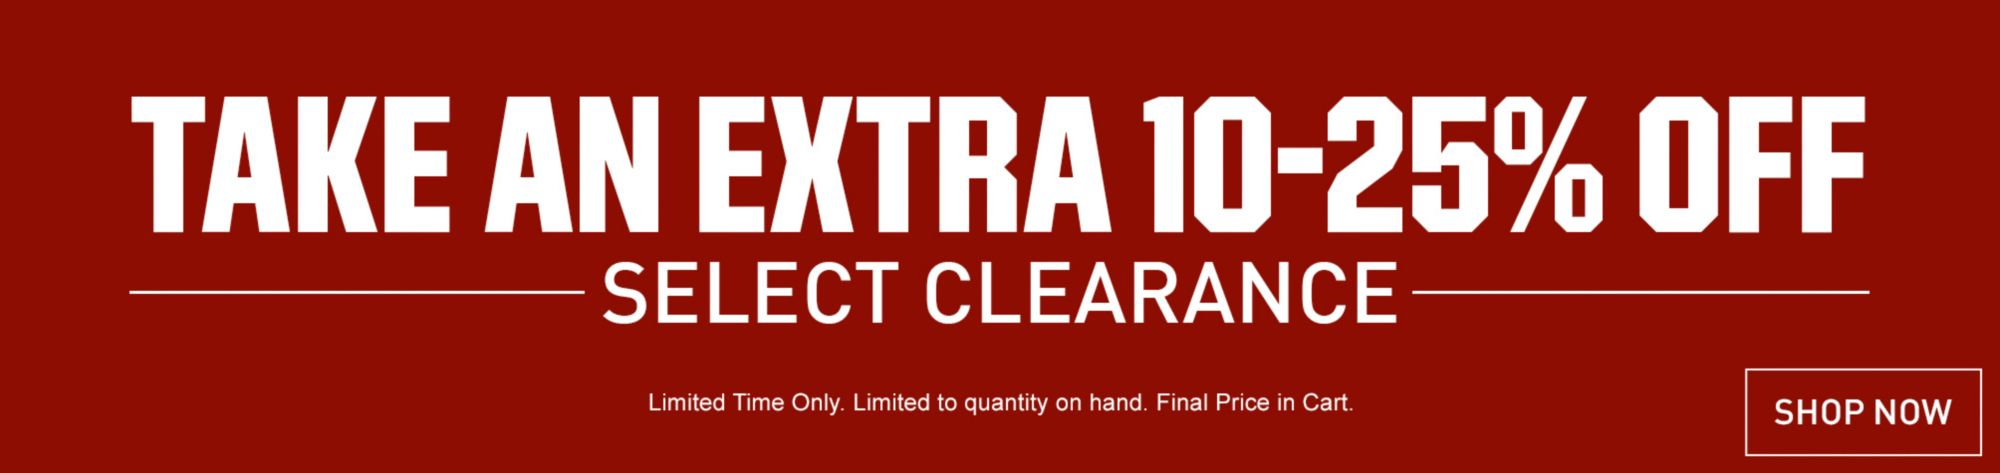 Shop Last Chance Clearance